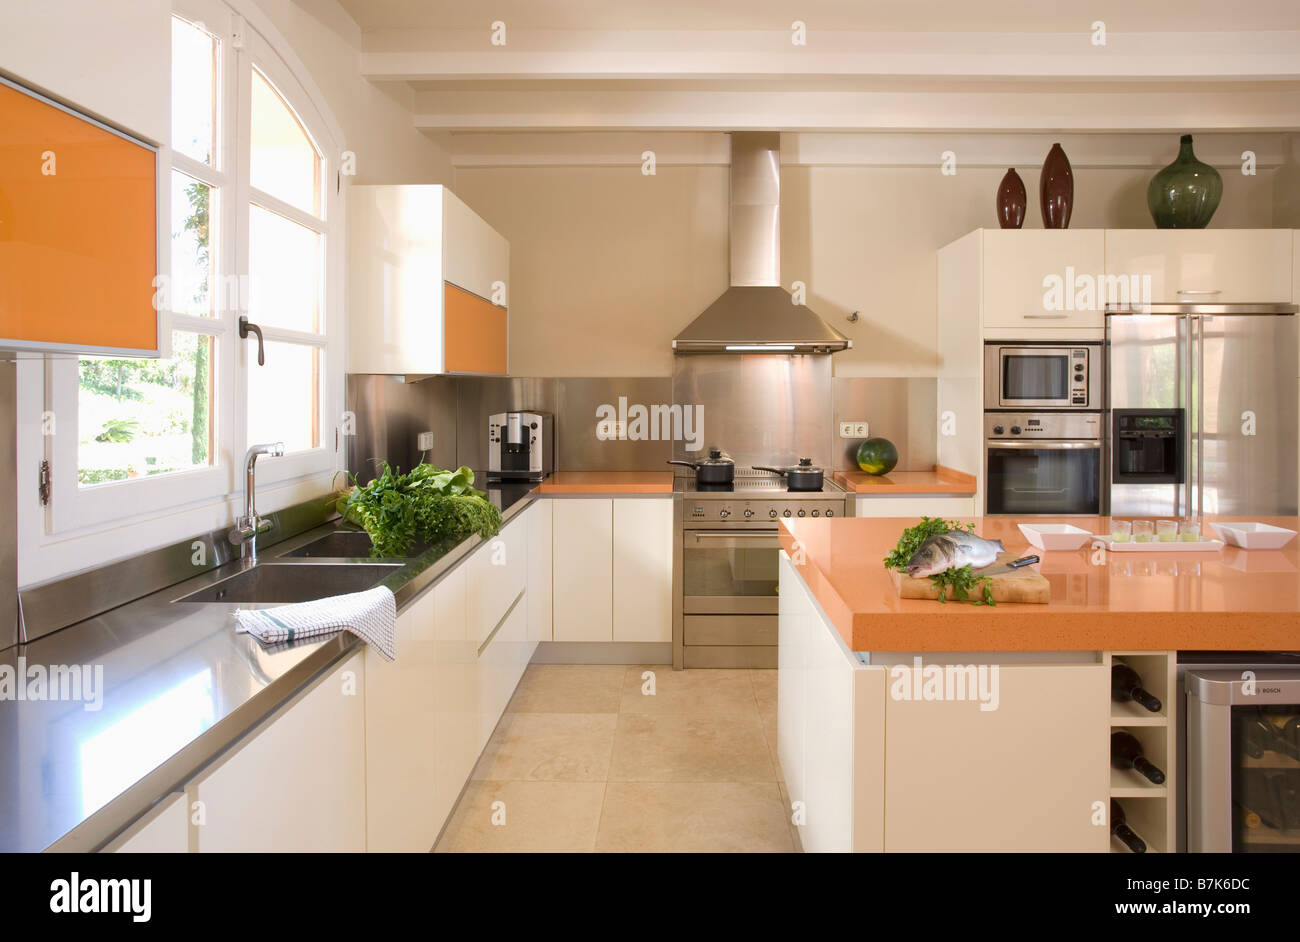 Orange And White Kitchen Stainless Steel And White Kitchen With Large Island Unit With